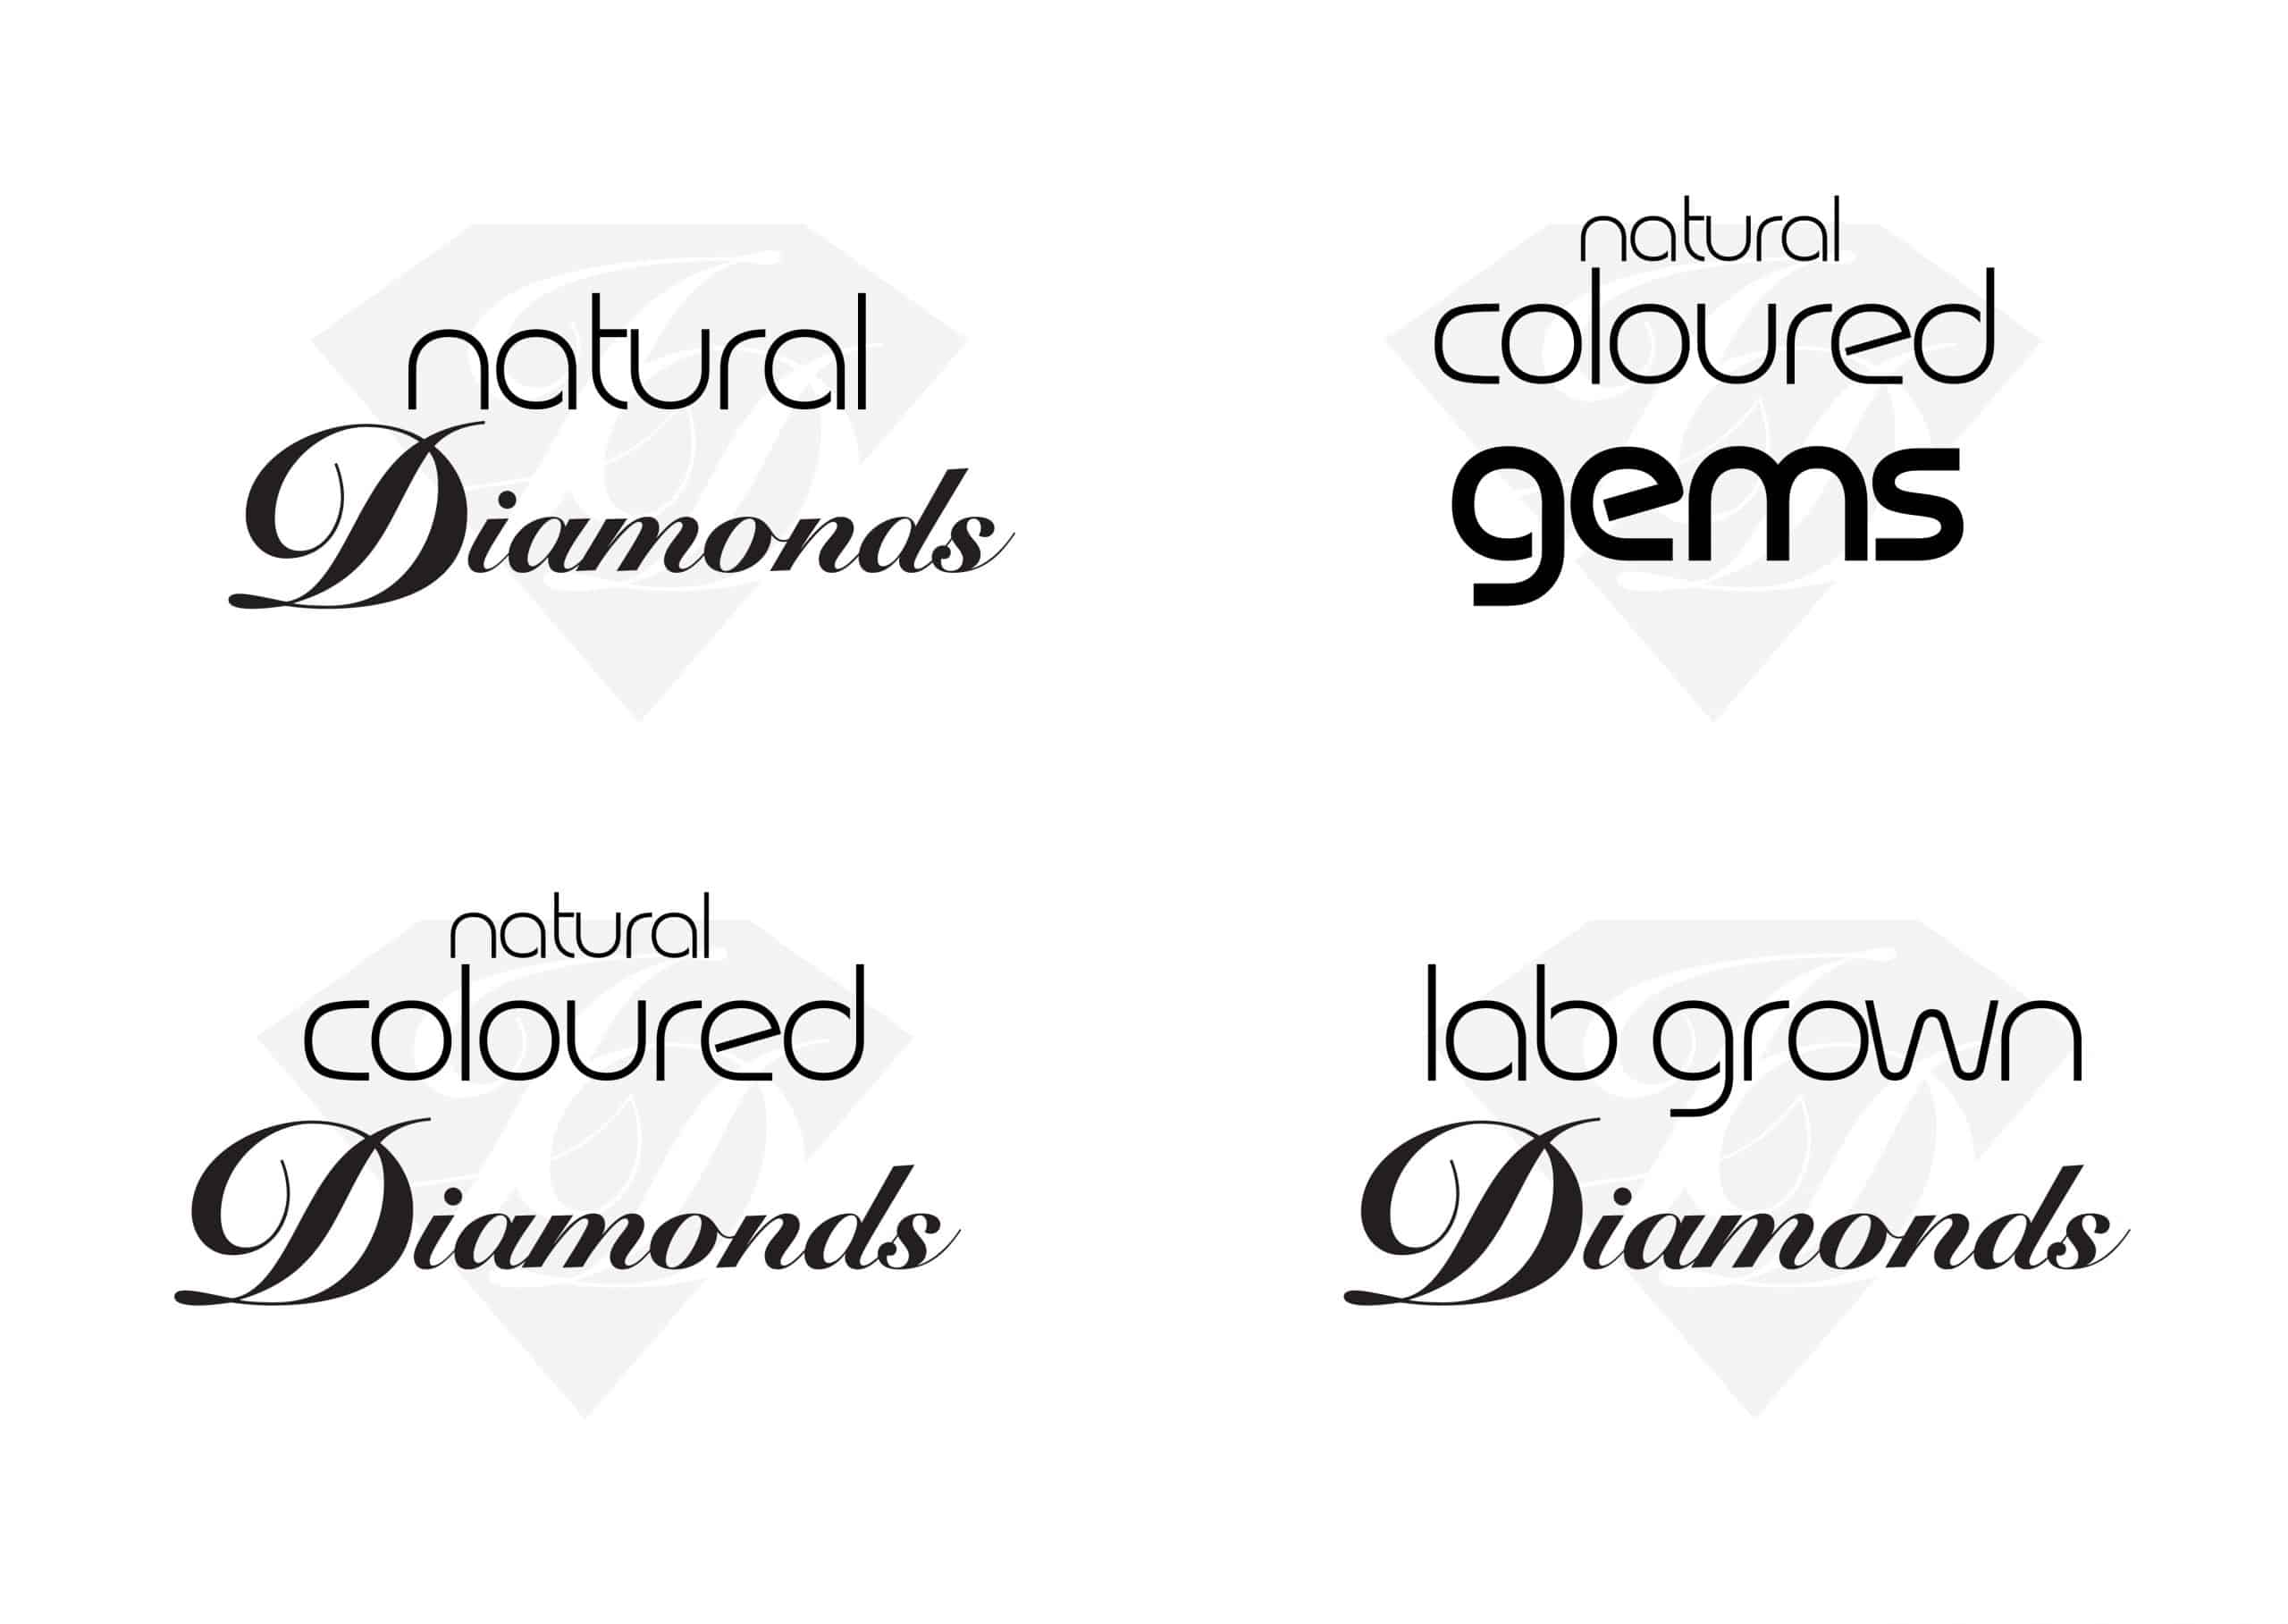 Just Diamonds introduces certified lab-grown diamonds and certified natural coloured gemstones